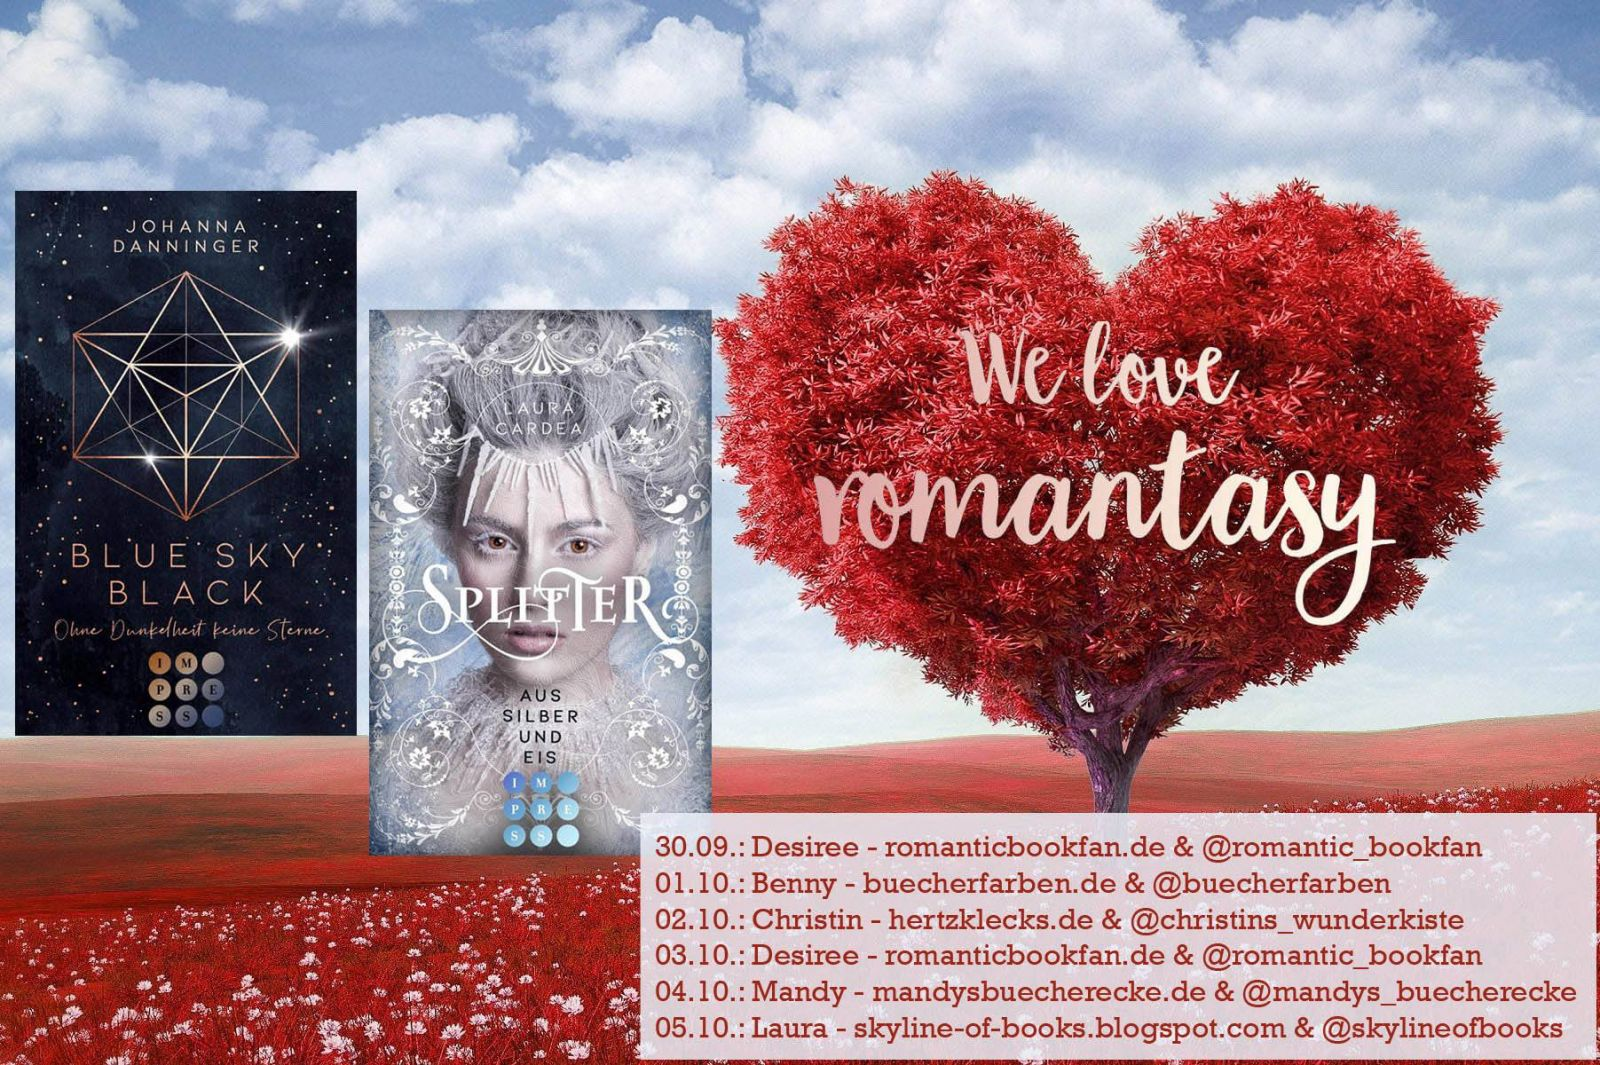 We love romantasy